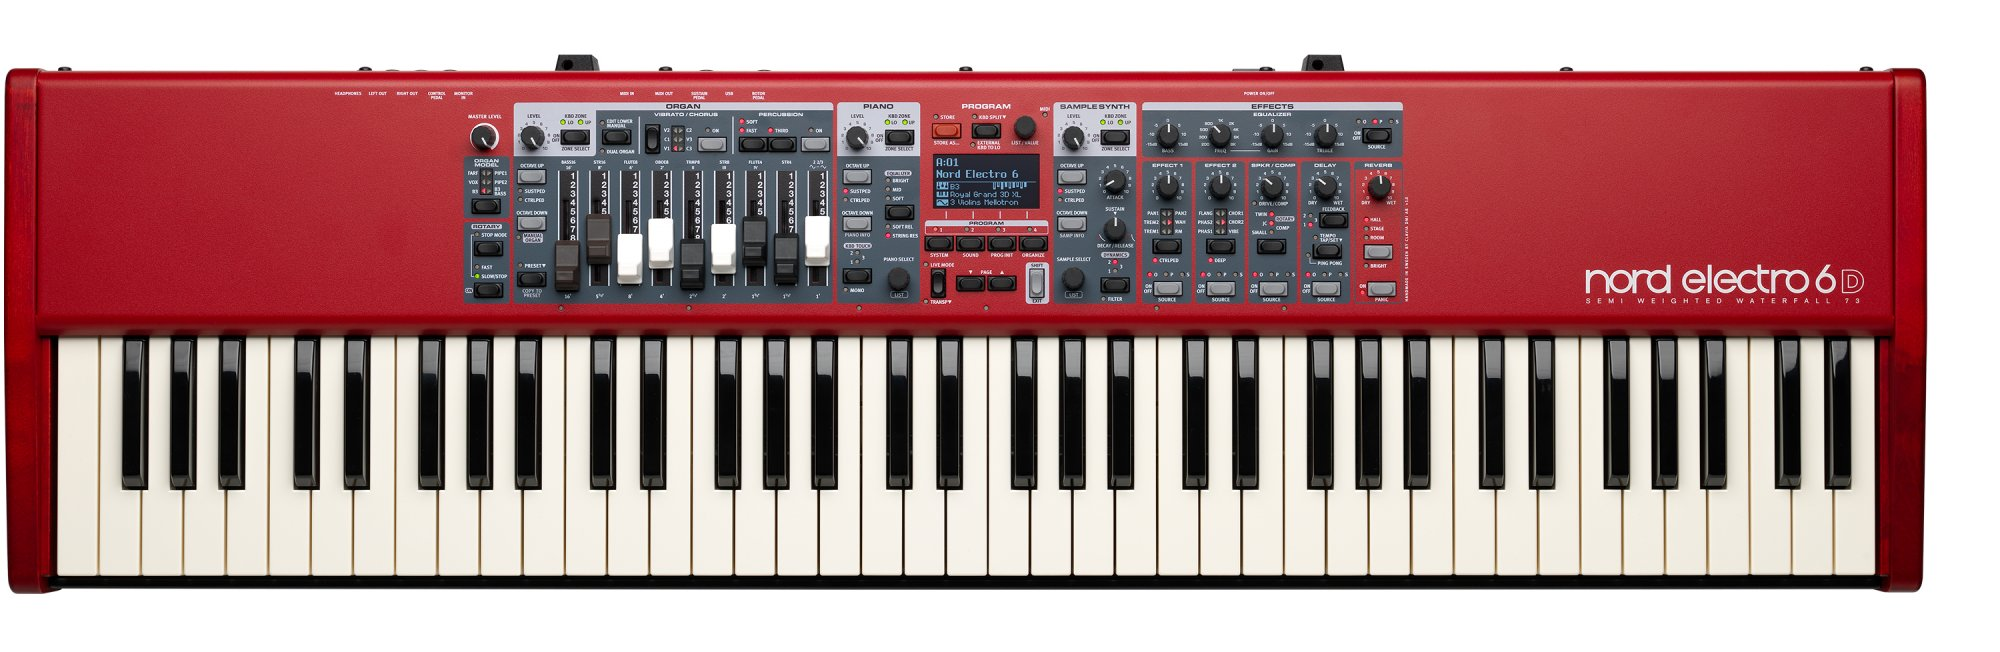 Nord Electro 6D 73 Key Semi Weighted Action Keyboard